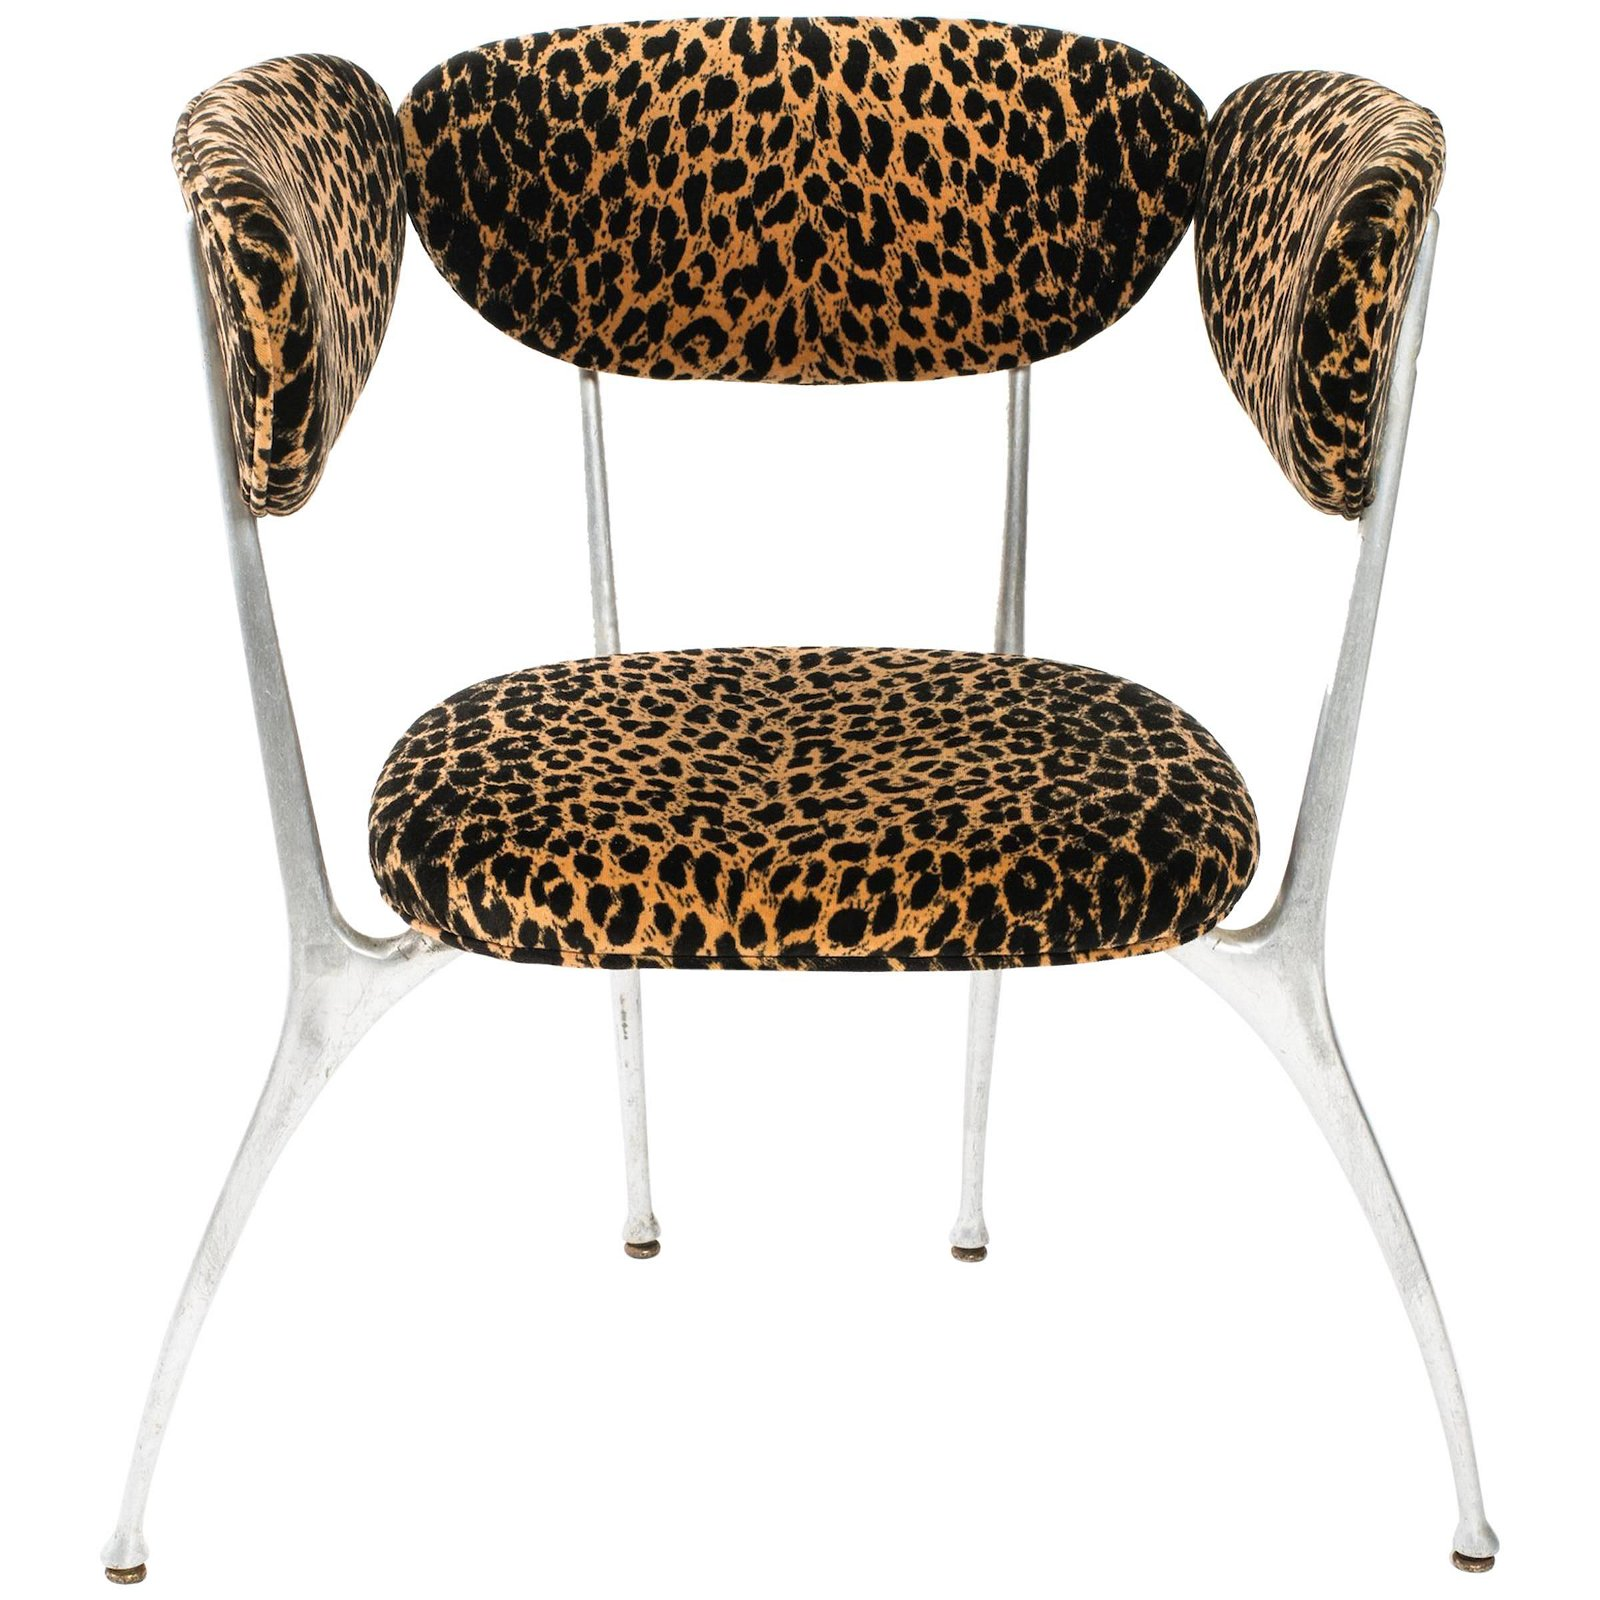 Designer Shelby Williams MCM Atomic Style Chair